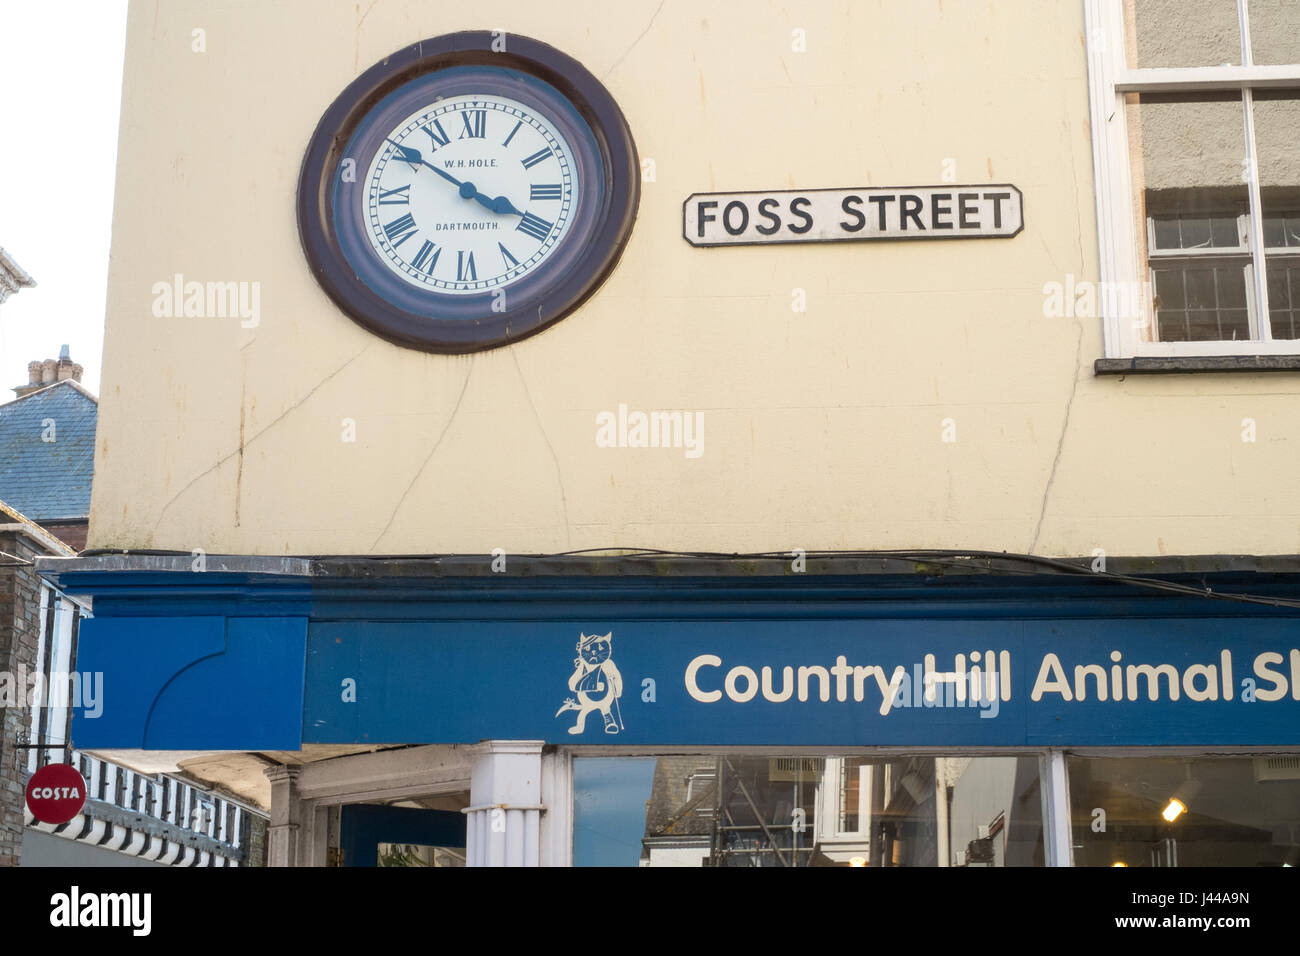 Foss Street , Dartmouth, South Devon, England, United Kingdom. Stock Photo